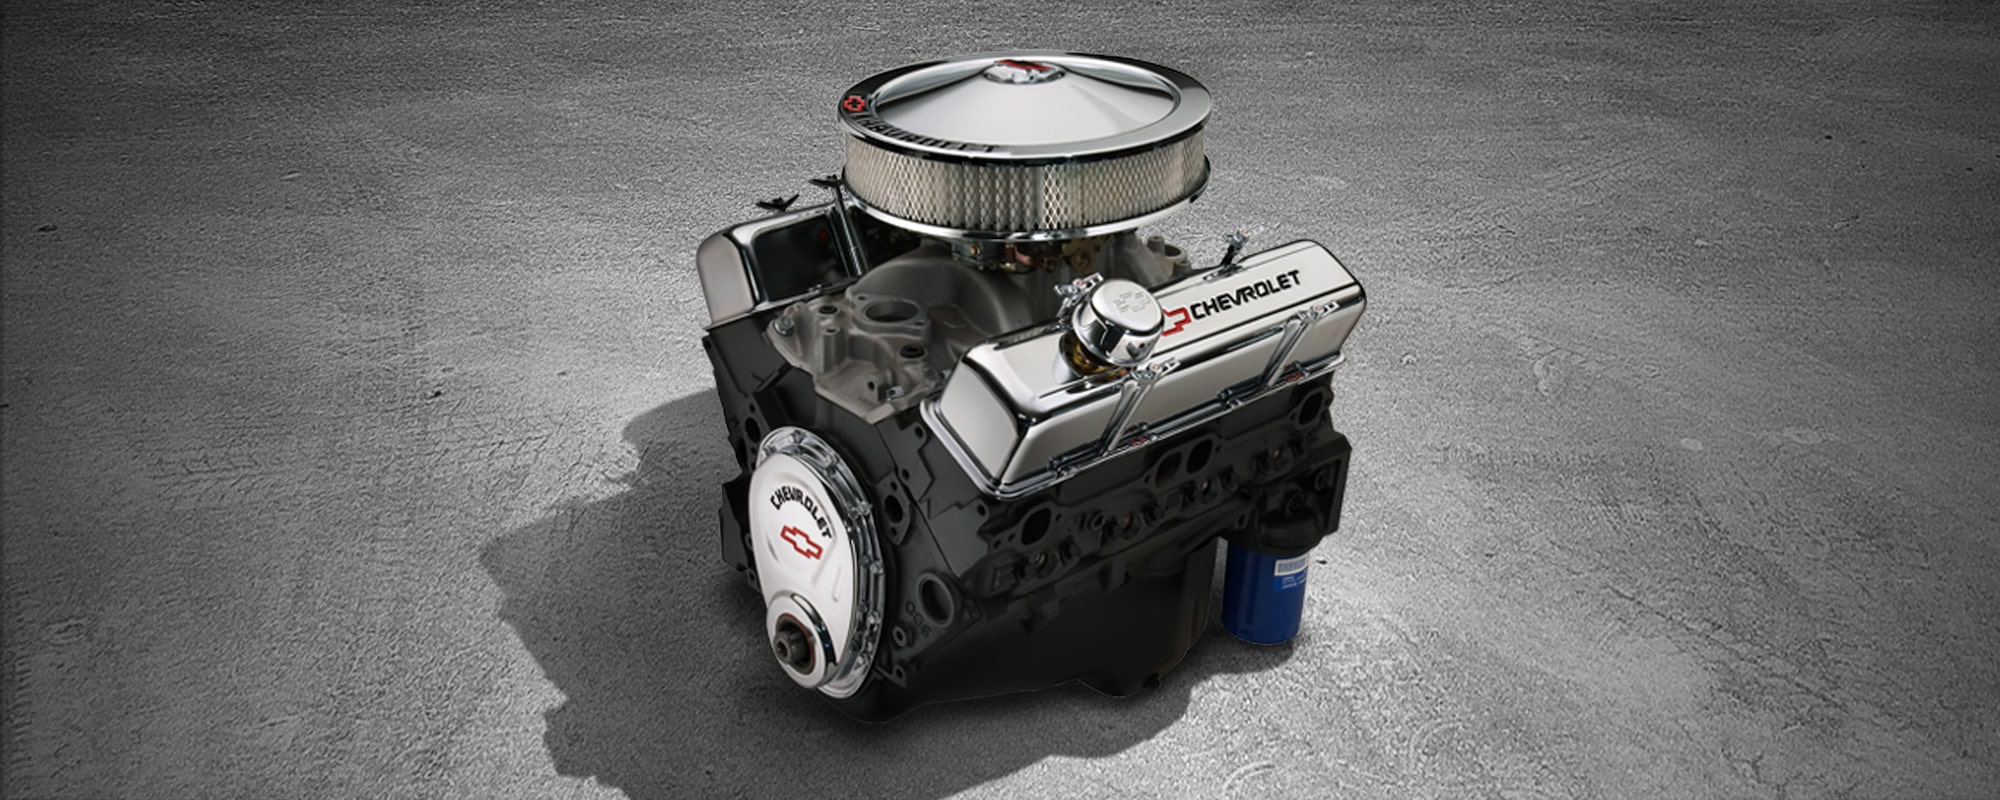 350290 Hp Small Block Crate Engine Chevrolet Performance